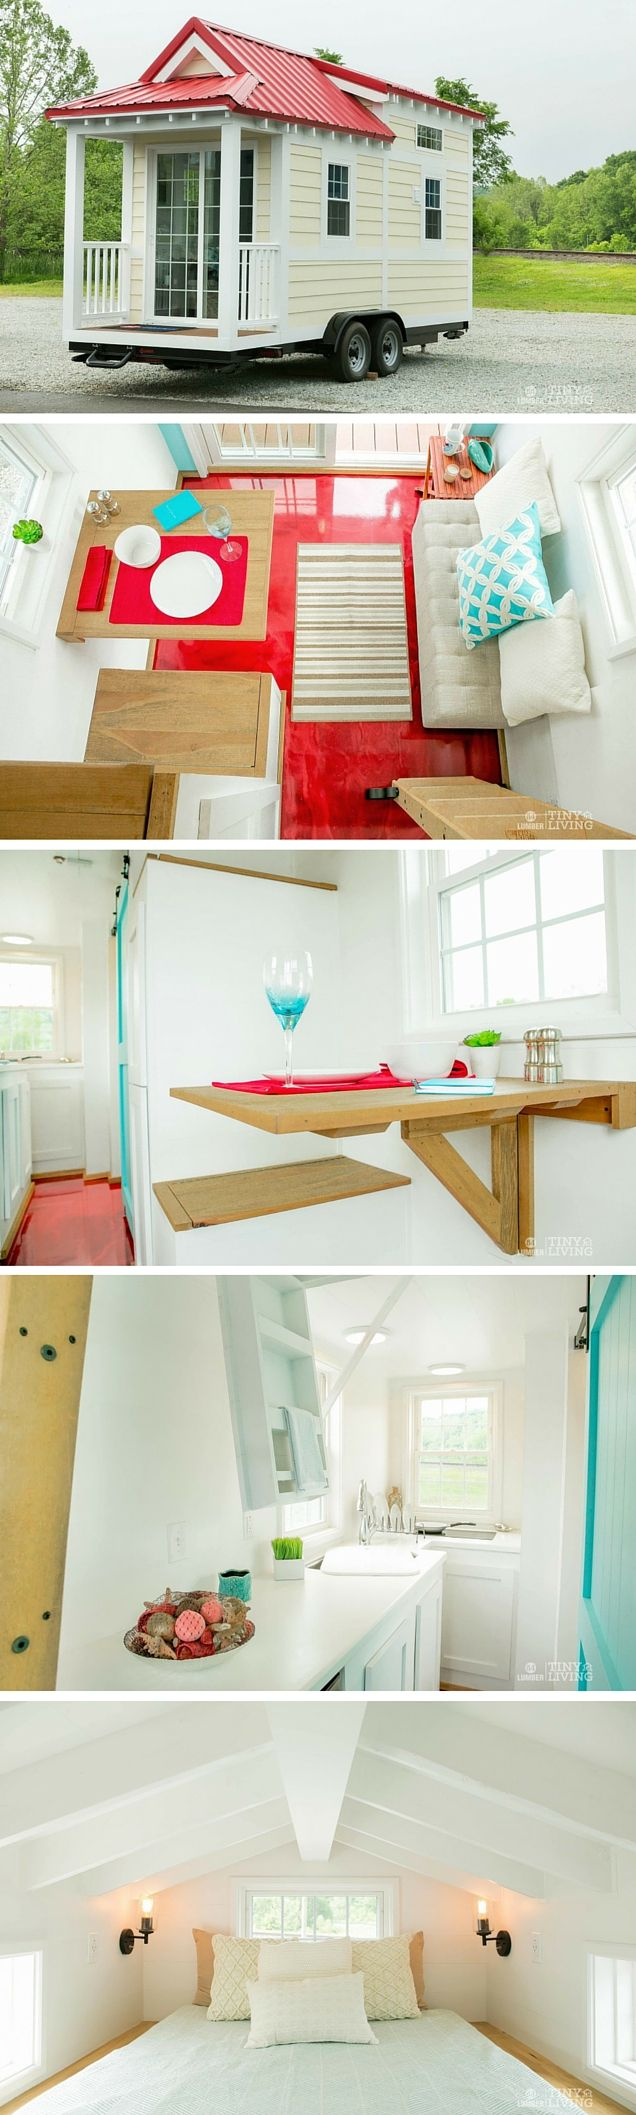 Red Shonsie Tiny House by 84 Lumber